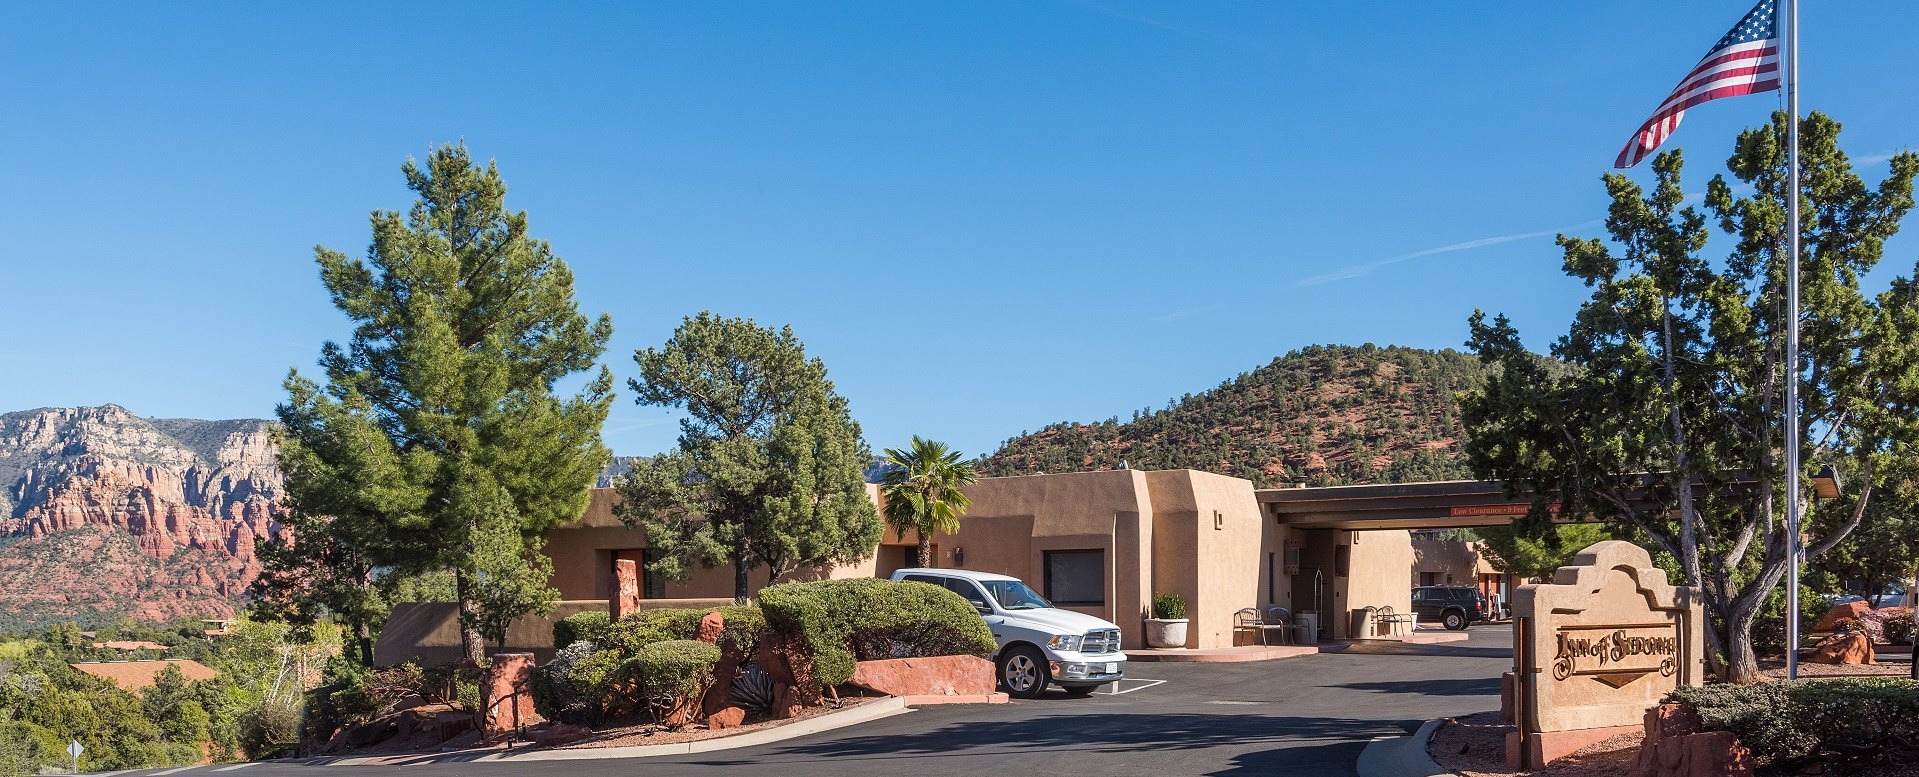 Best Western Plus Inn of Sedona-Entrance